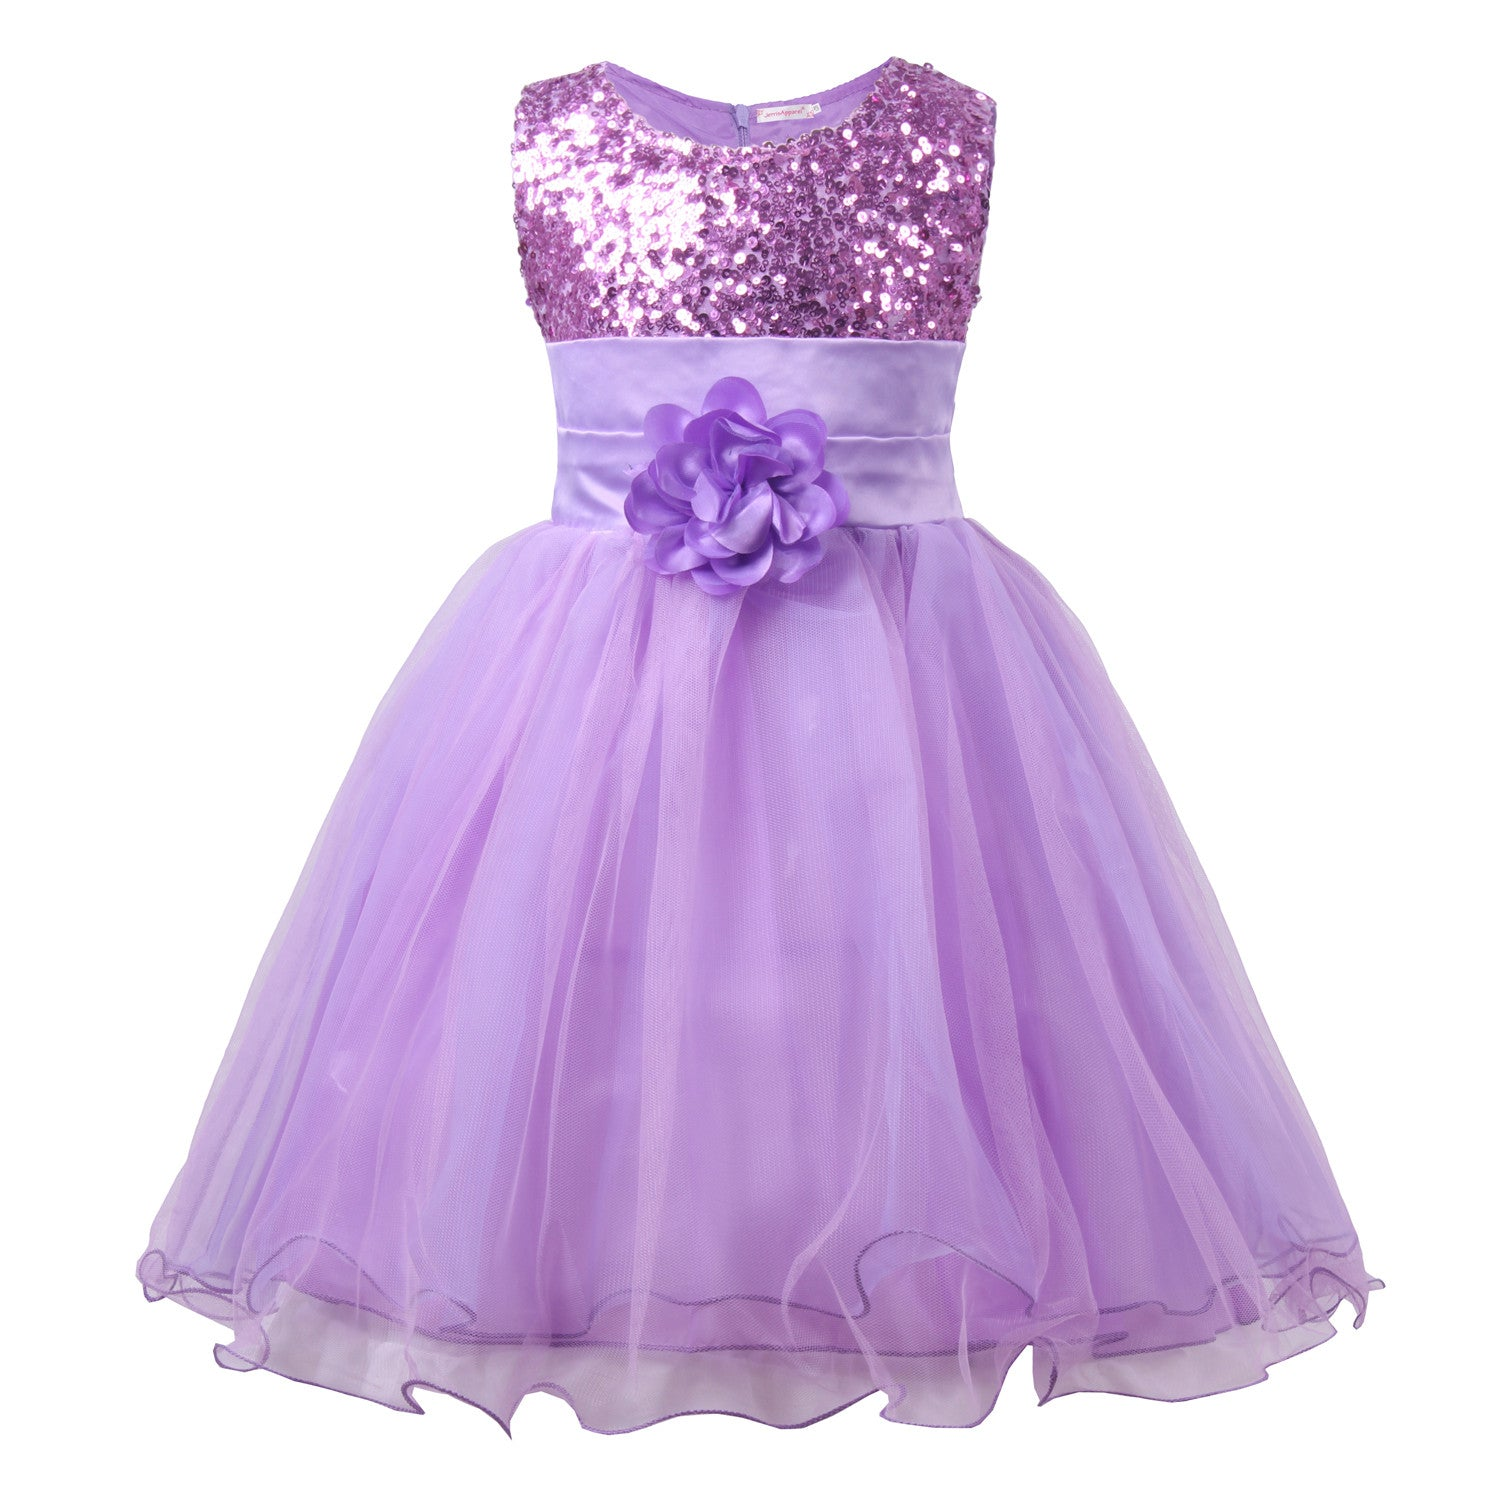 Little Girls Sequin Mesh Flower Ball Gown Party Dress Tulle Prom Purple